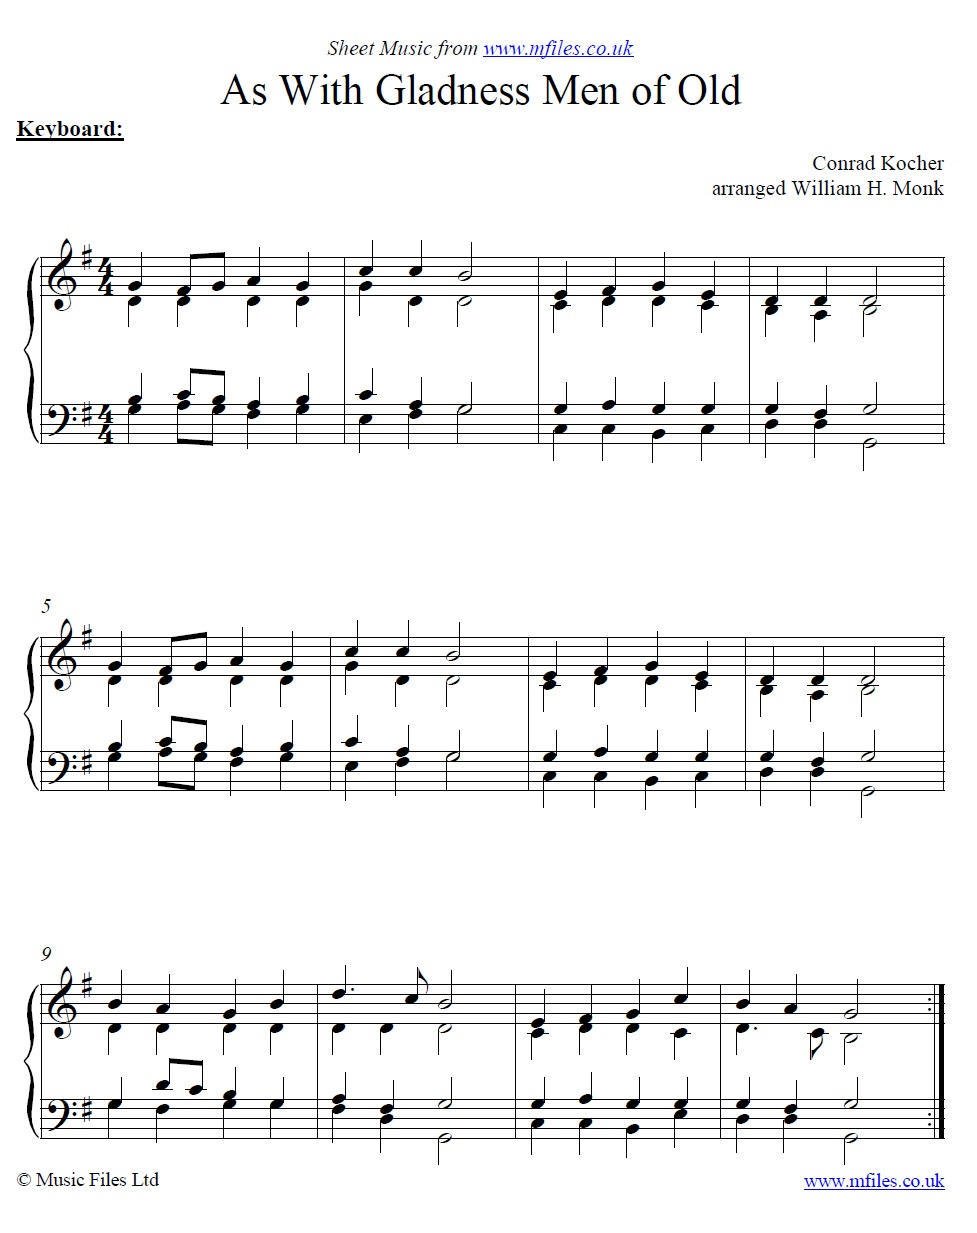 As With Gladness Men of Old - a Traditional Christmas Carol